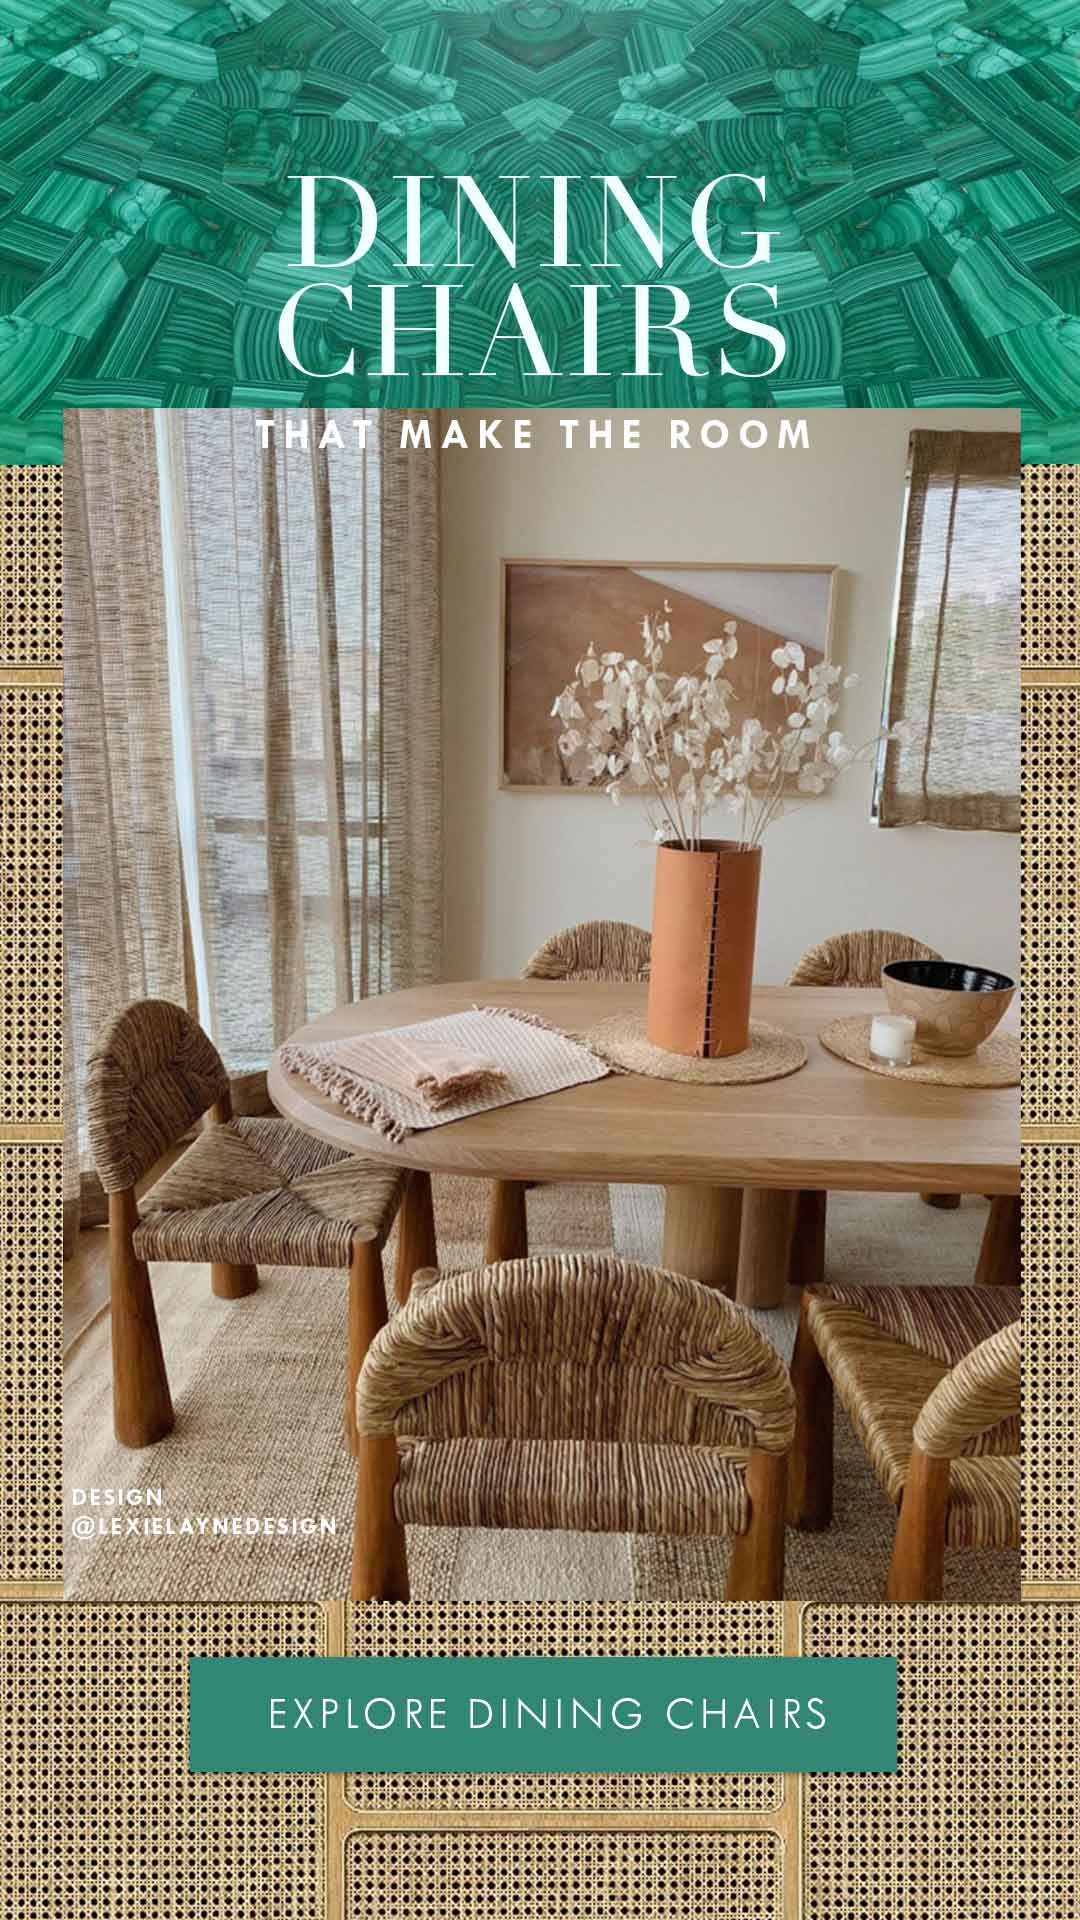 Teak Dining Chairs In 2020 Natural Living Room Chic Living Room Decor Chic Bedroom Decor #teak #living #room #furniture